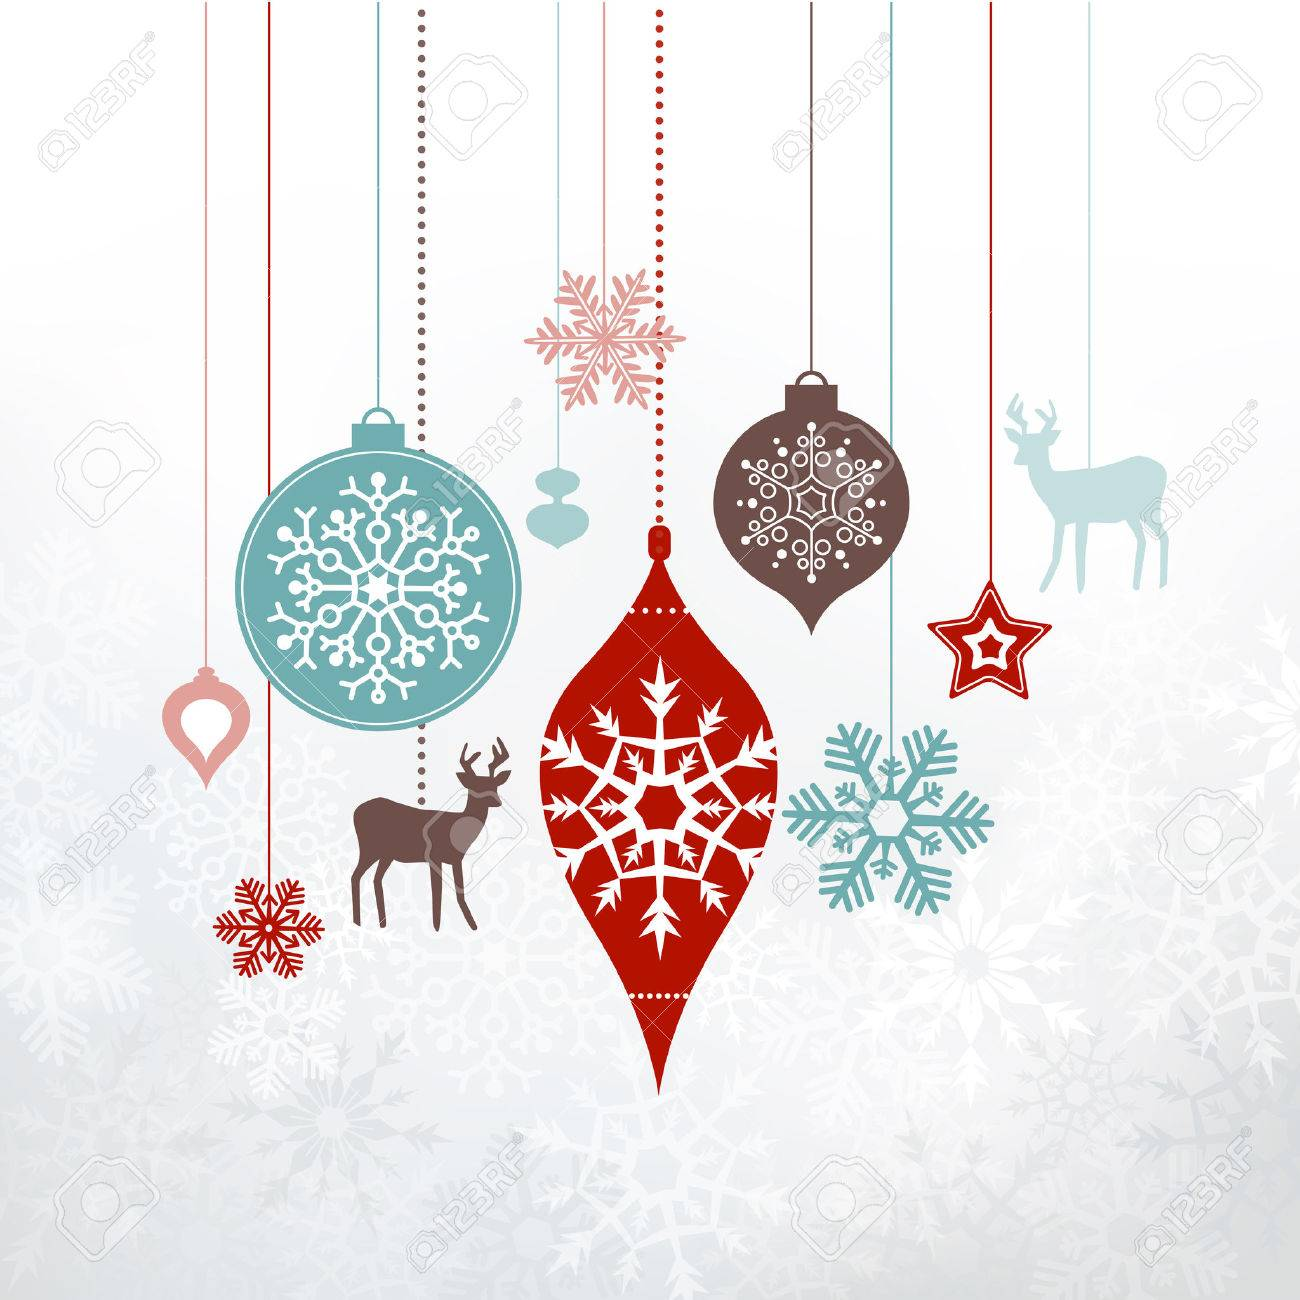 Christmas decorations, ornaments. Silver frosty background - frozen snowlakes. Can be used as a greetings card. - 50372207